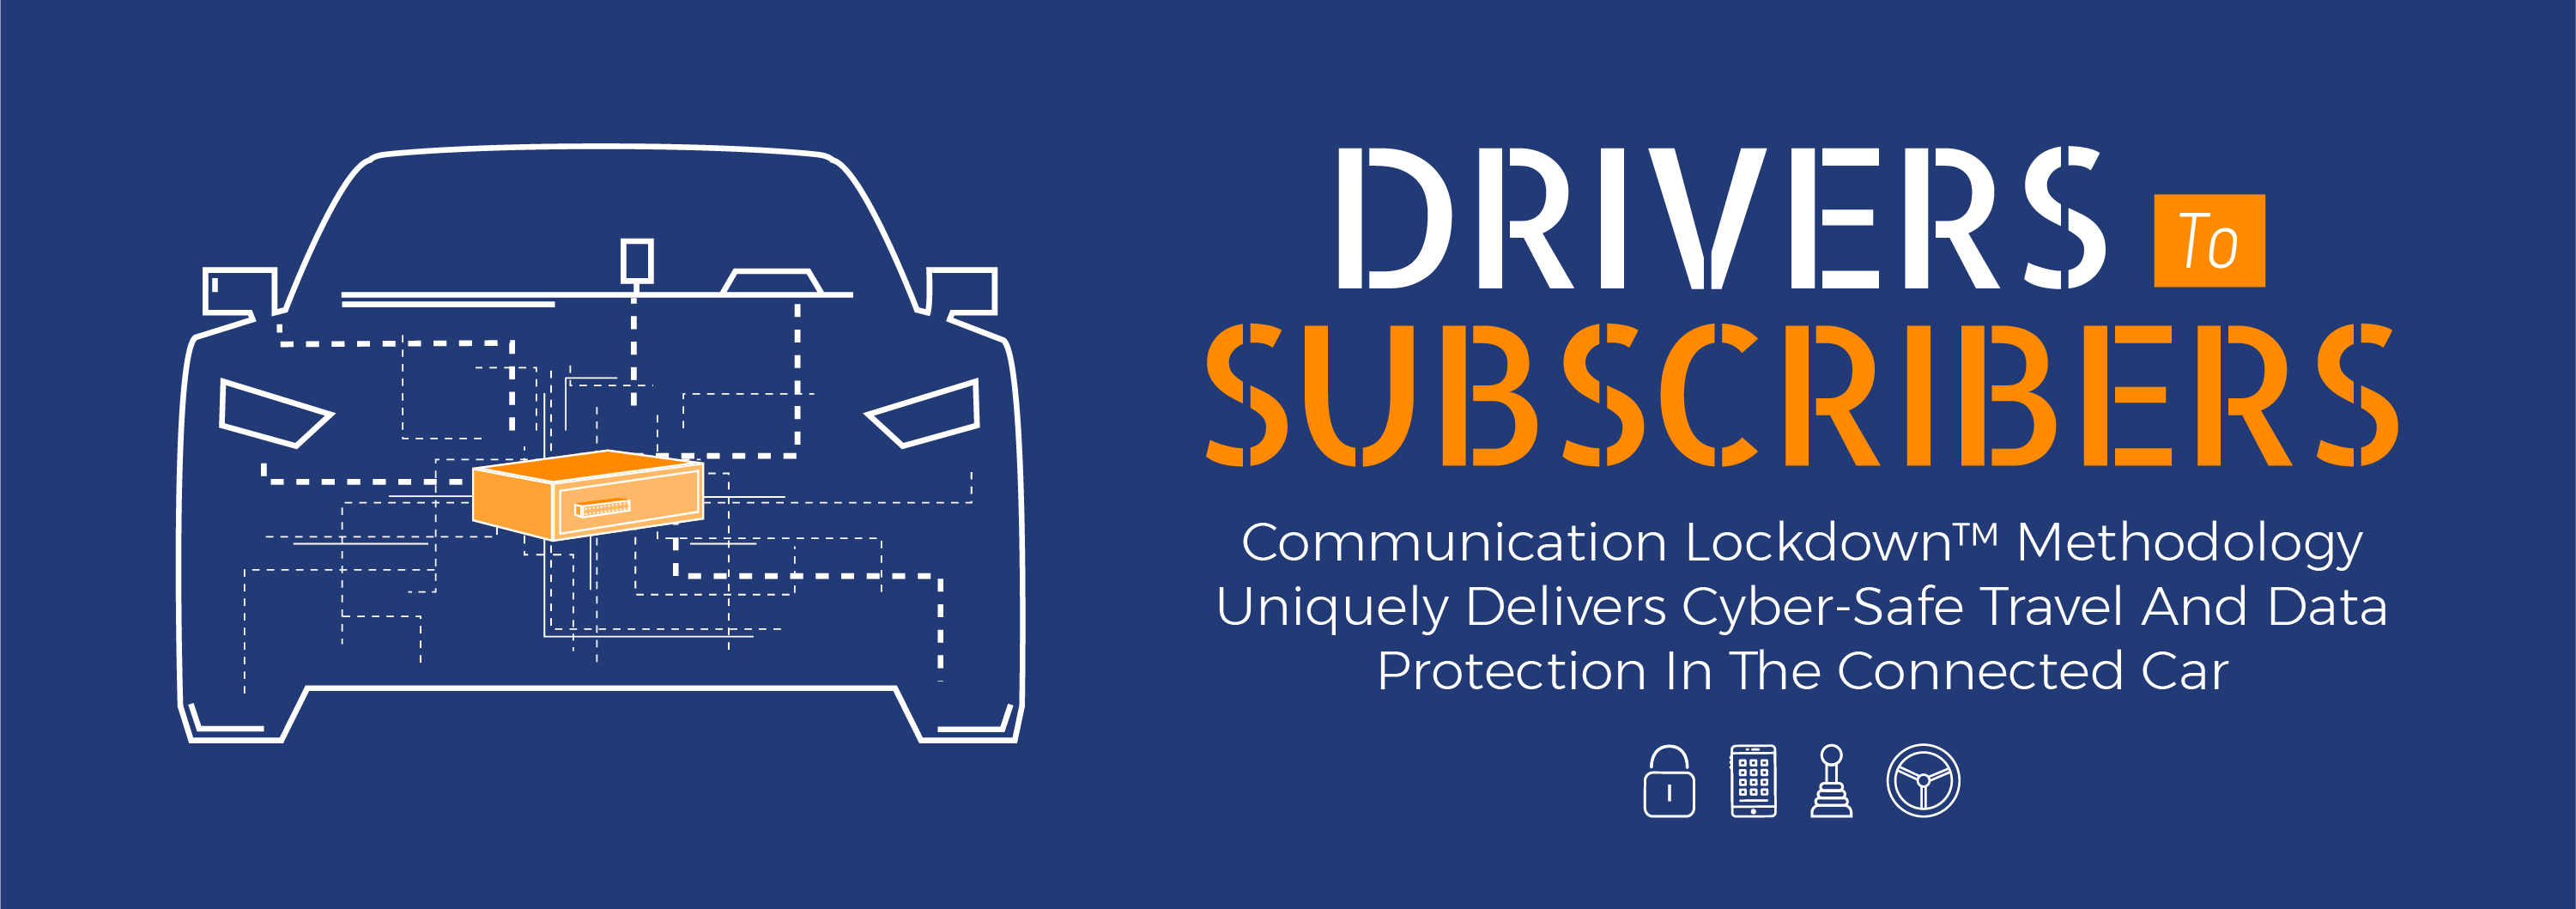 Image of a car outline with the communication lockdown methodology by GuardKnox protecting the vehcile from cyber threats